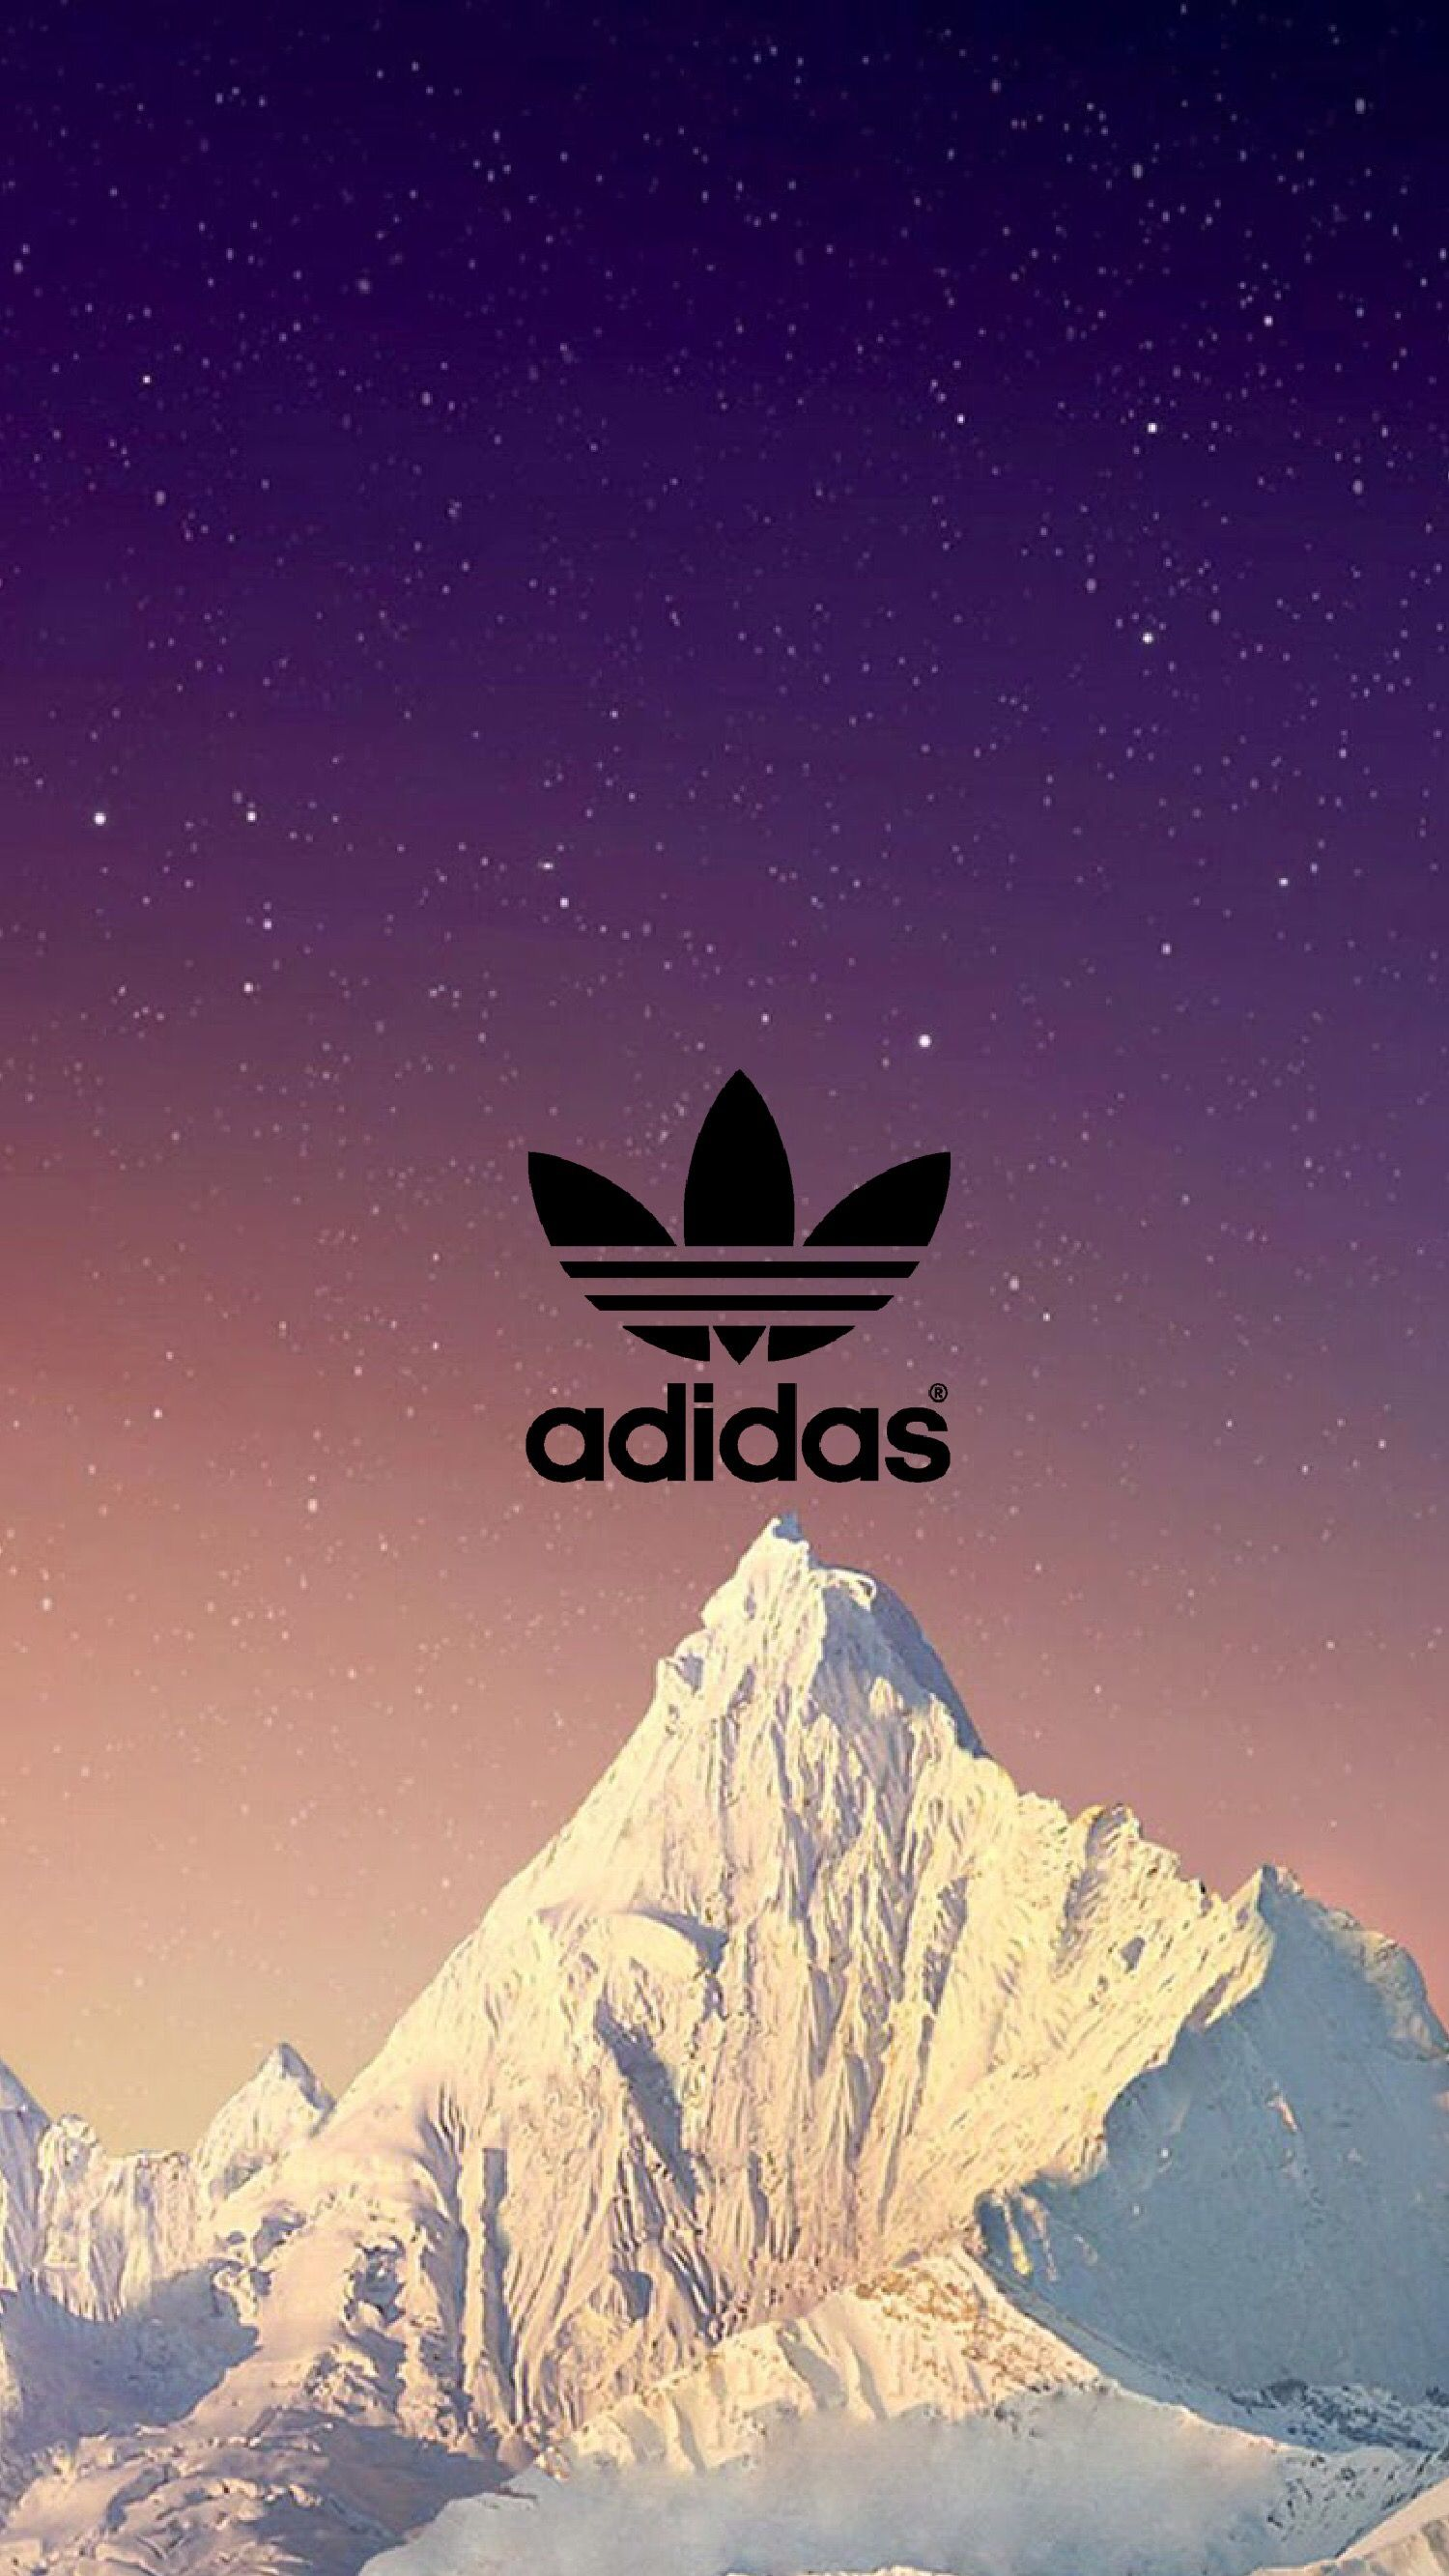 Adidas iphone wallpaper Taustakuvat Pinterest Adidas